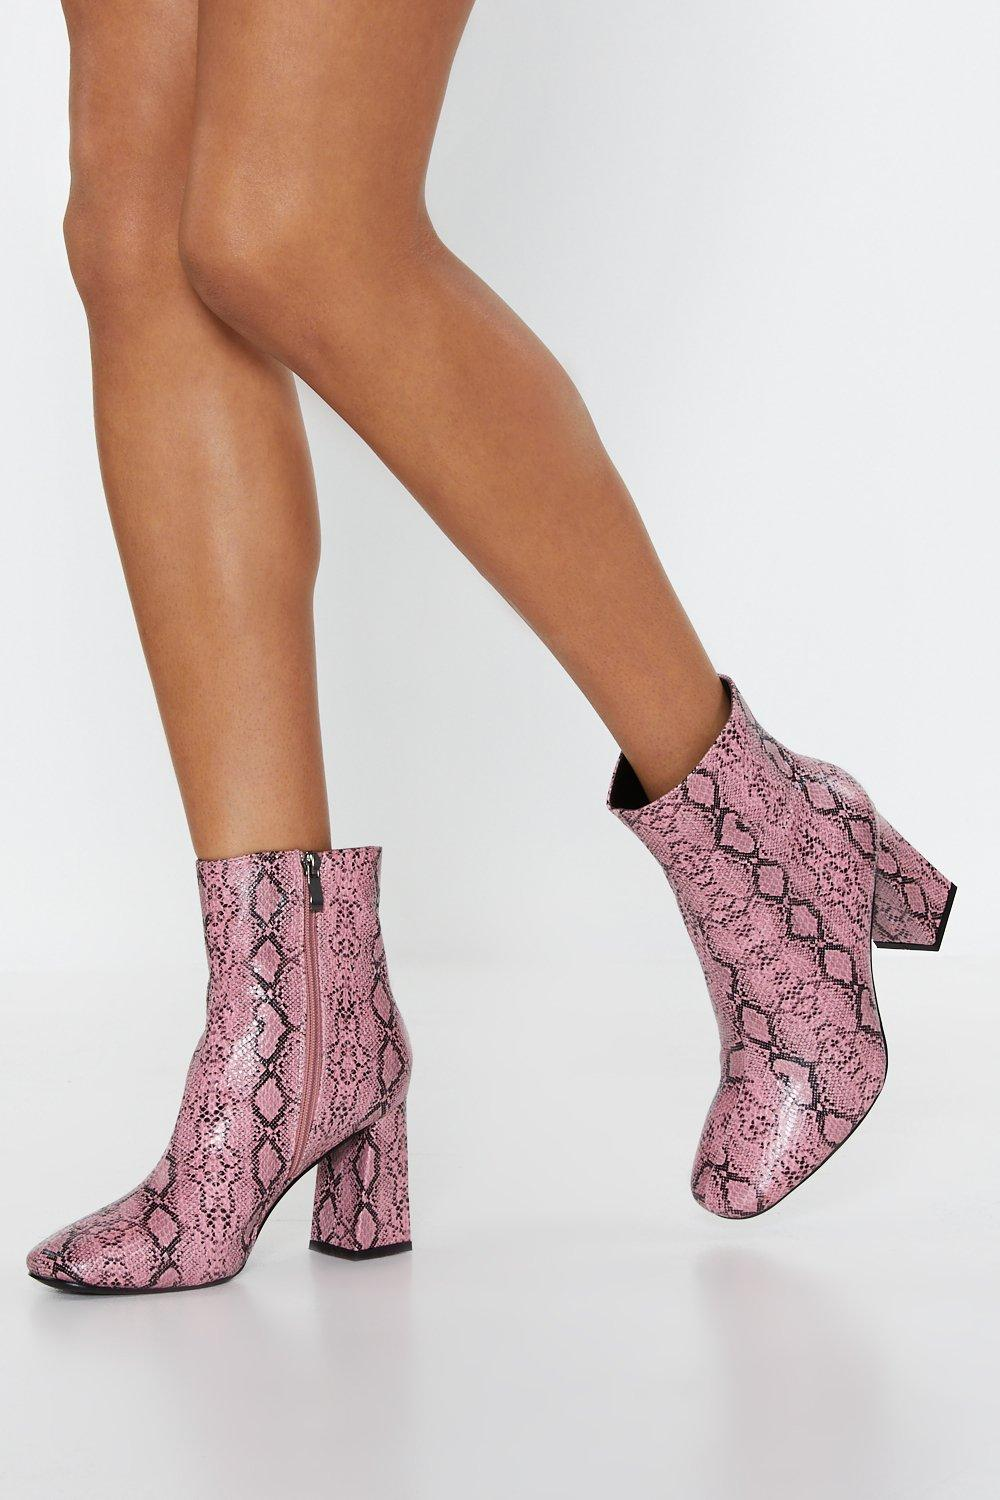 d468e163d594 Snake Your Way Faux Leather Ankle Boots | Shop Clothes at Nasty Gal!